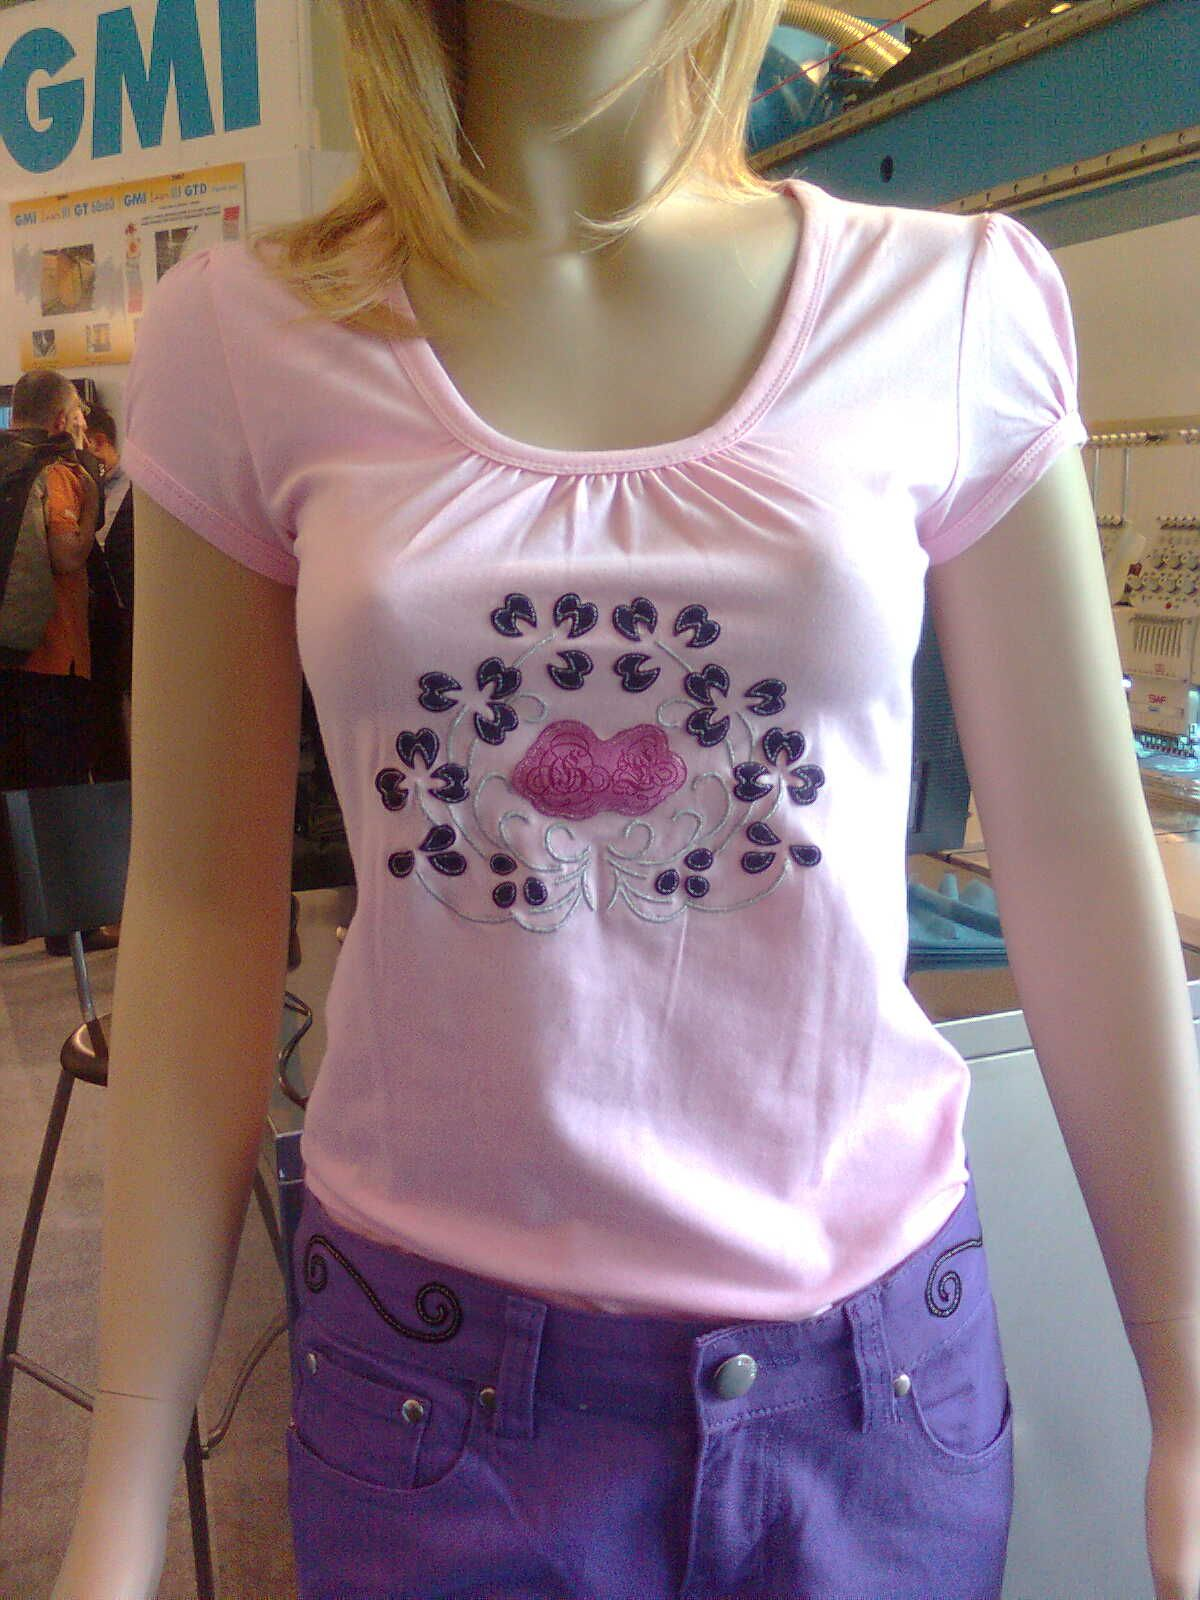 #T-shirt with laser cut and engrave applique and silver thread embroidery